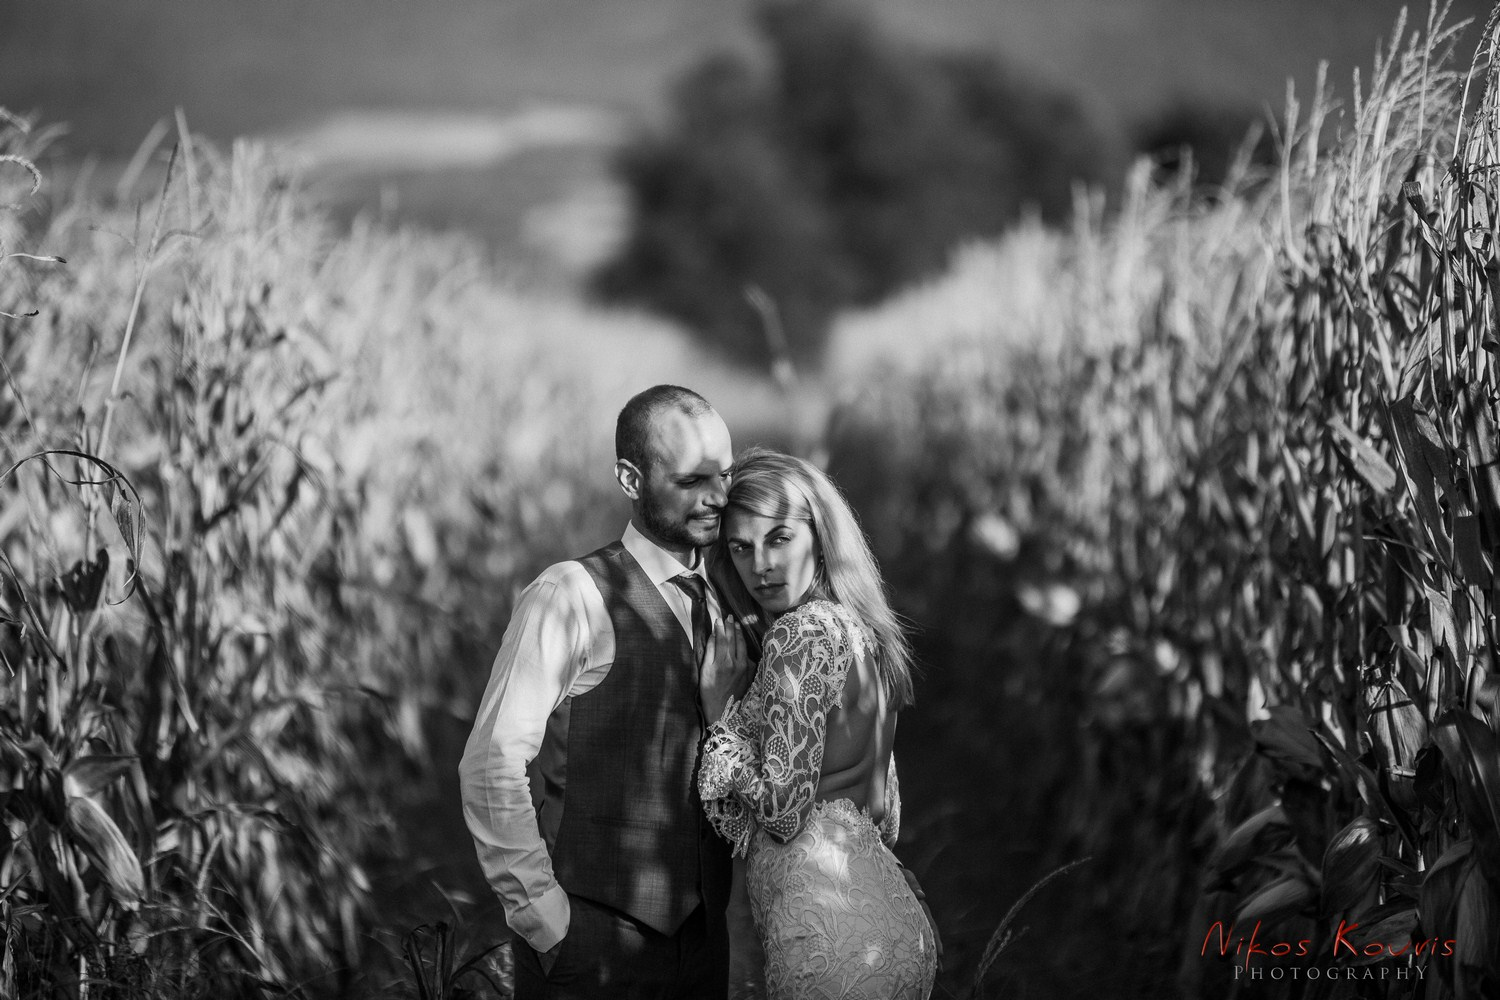 Dimitris & Dafni's wedding story…